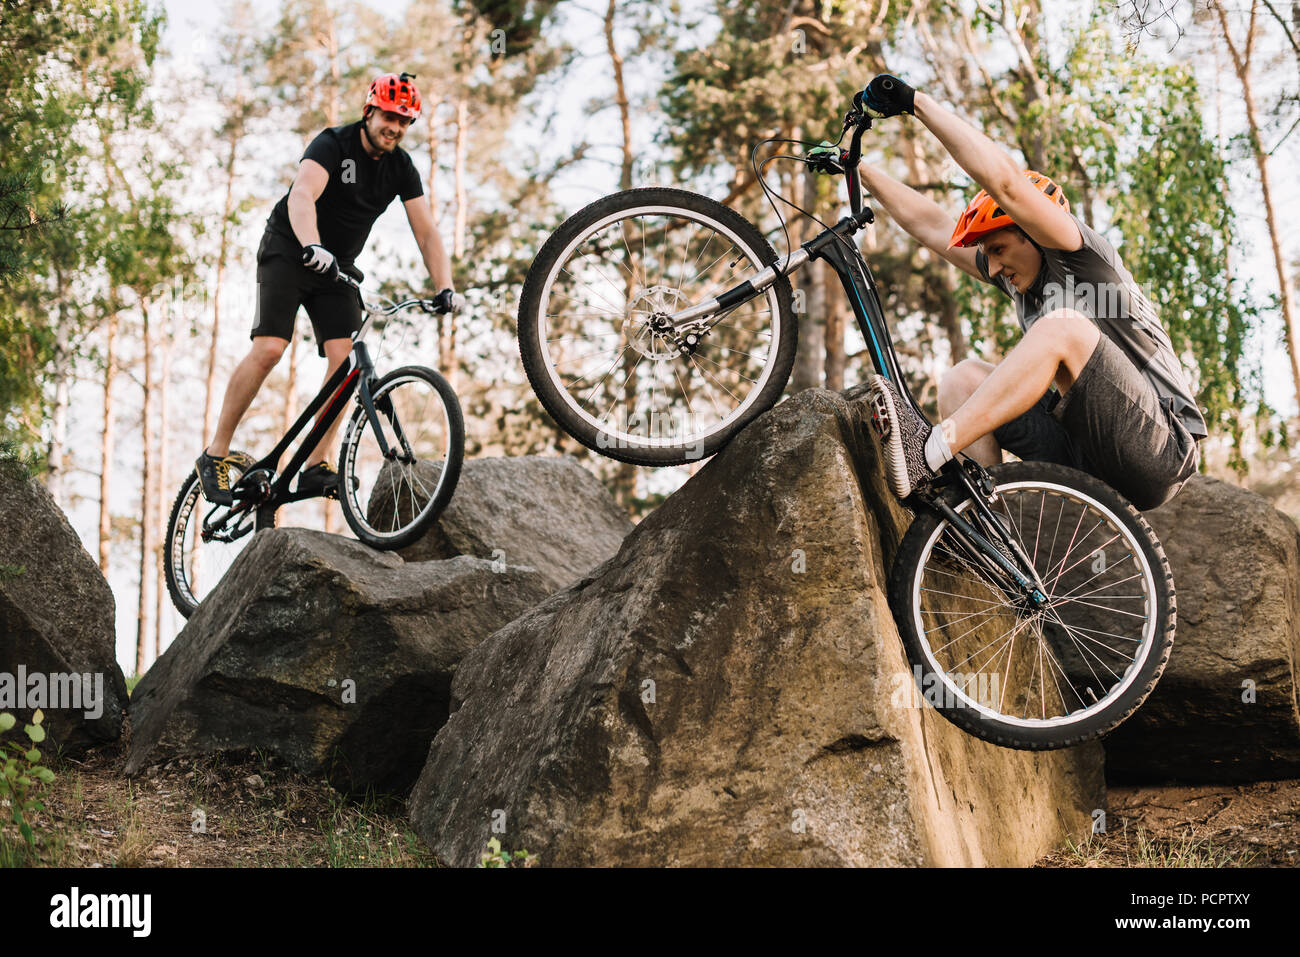 active young trial bikers riding on rocks outdoors - Stock Image